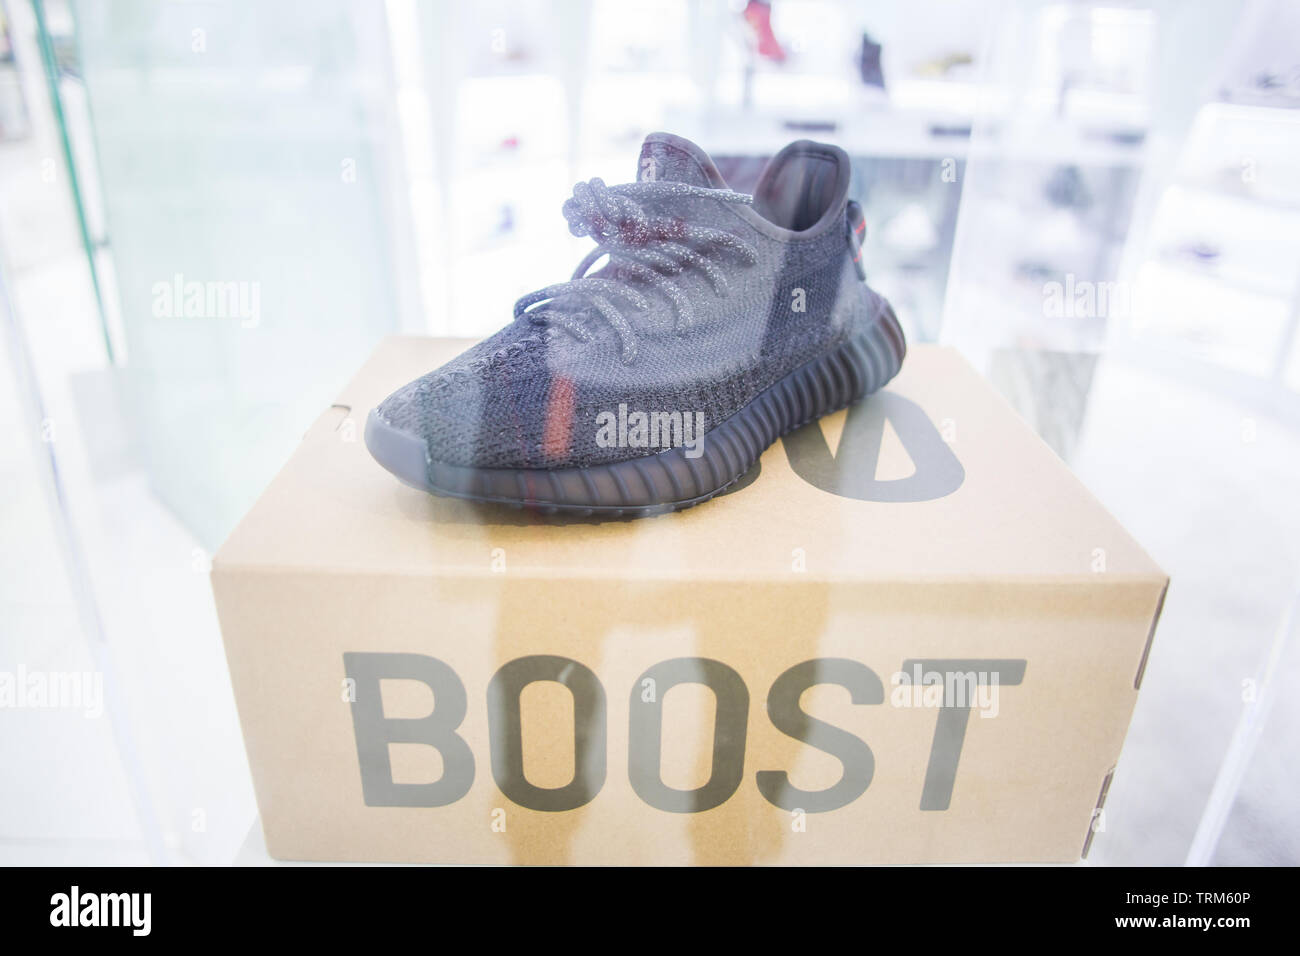 42dbad7307 Adidas Shoes Display Immagini & Adidas Shoes Display Fotos Stock - Alamy